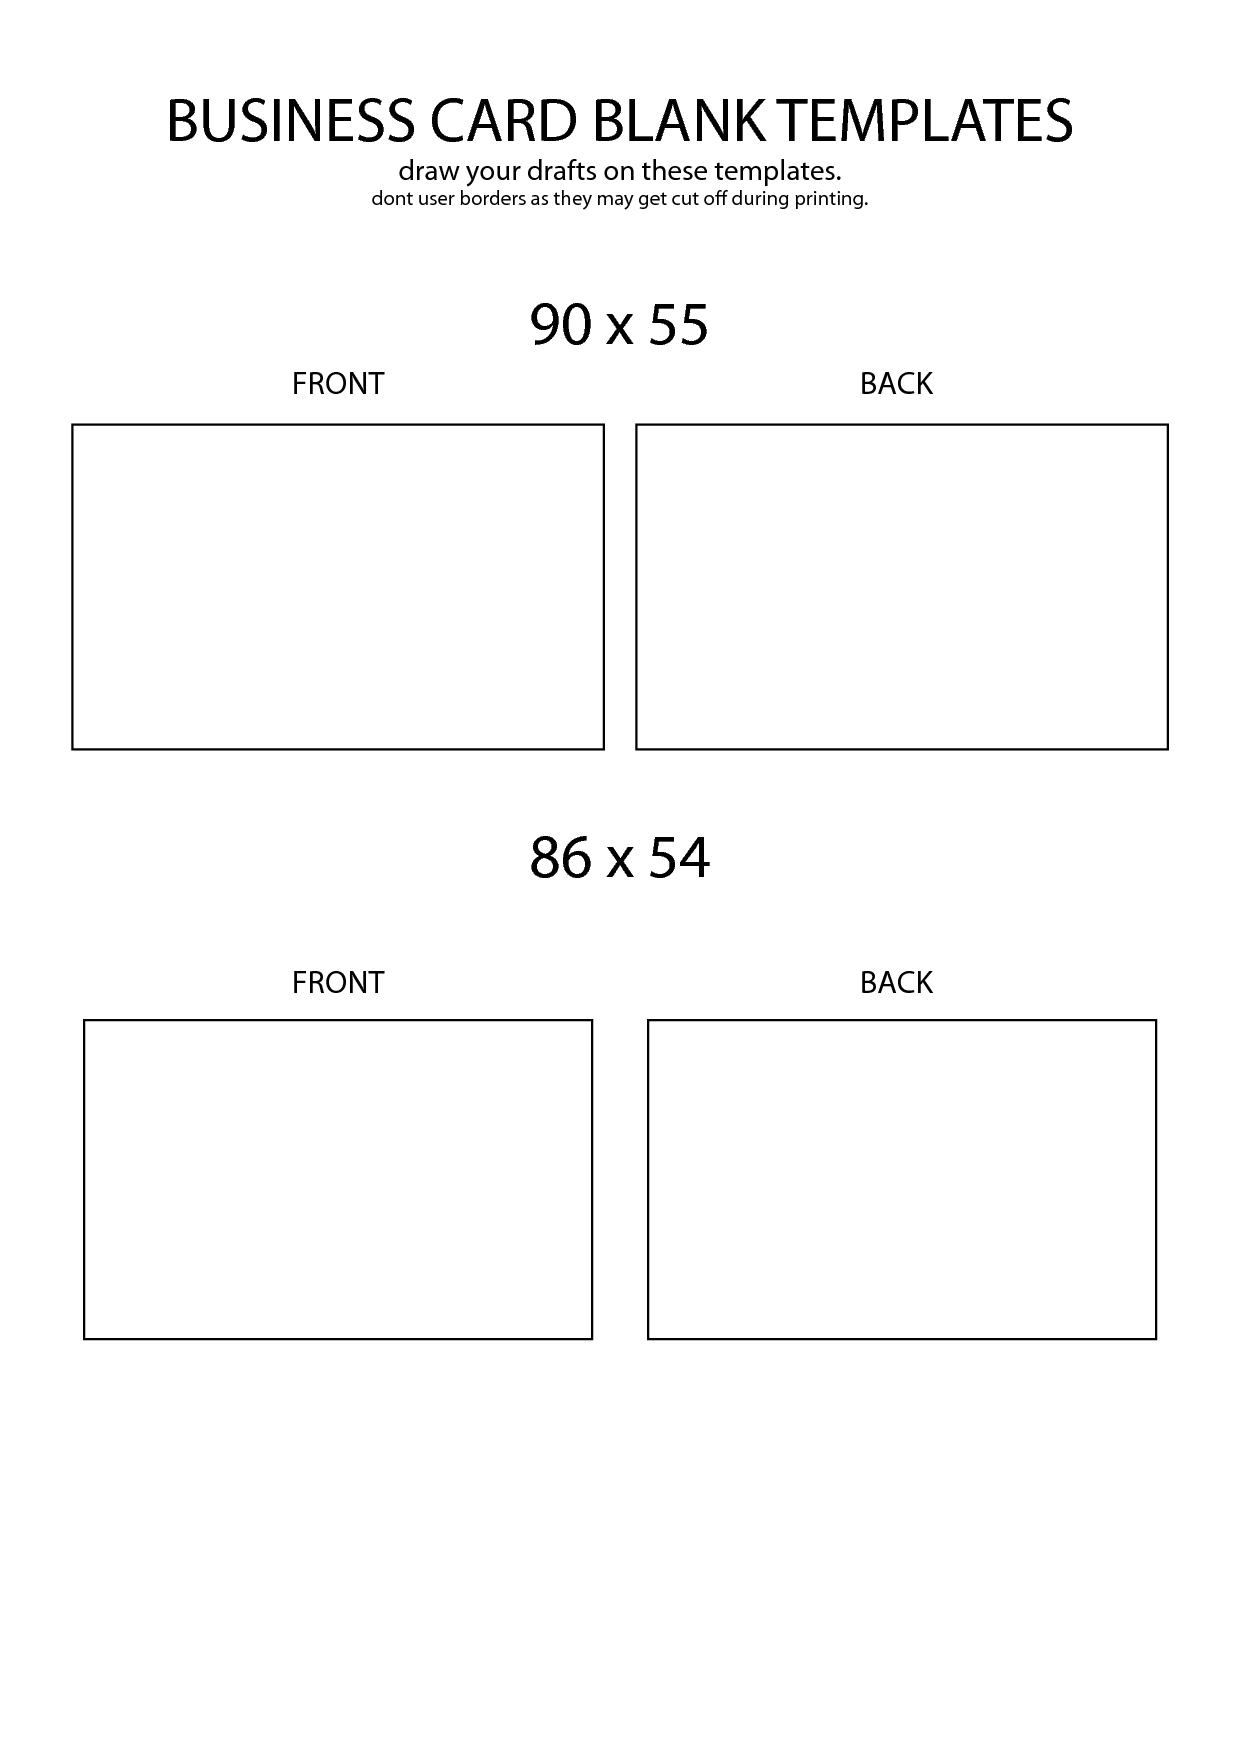 9 Blank Business Card Template Images.